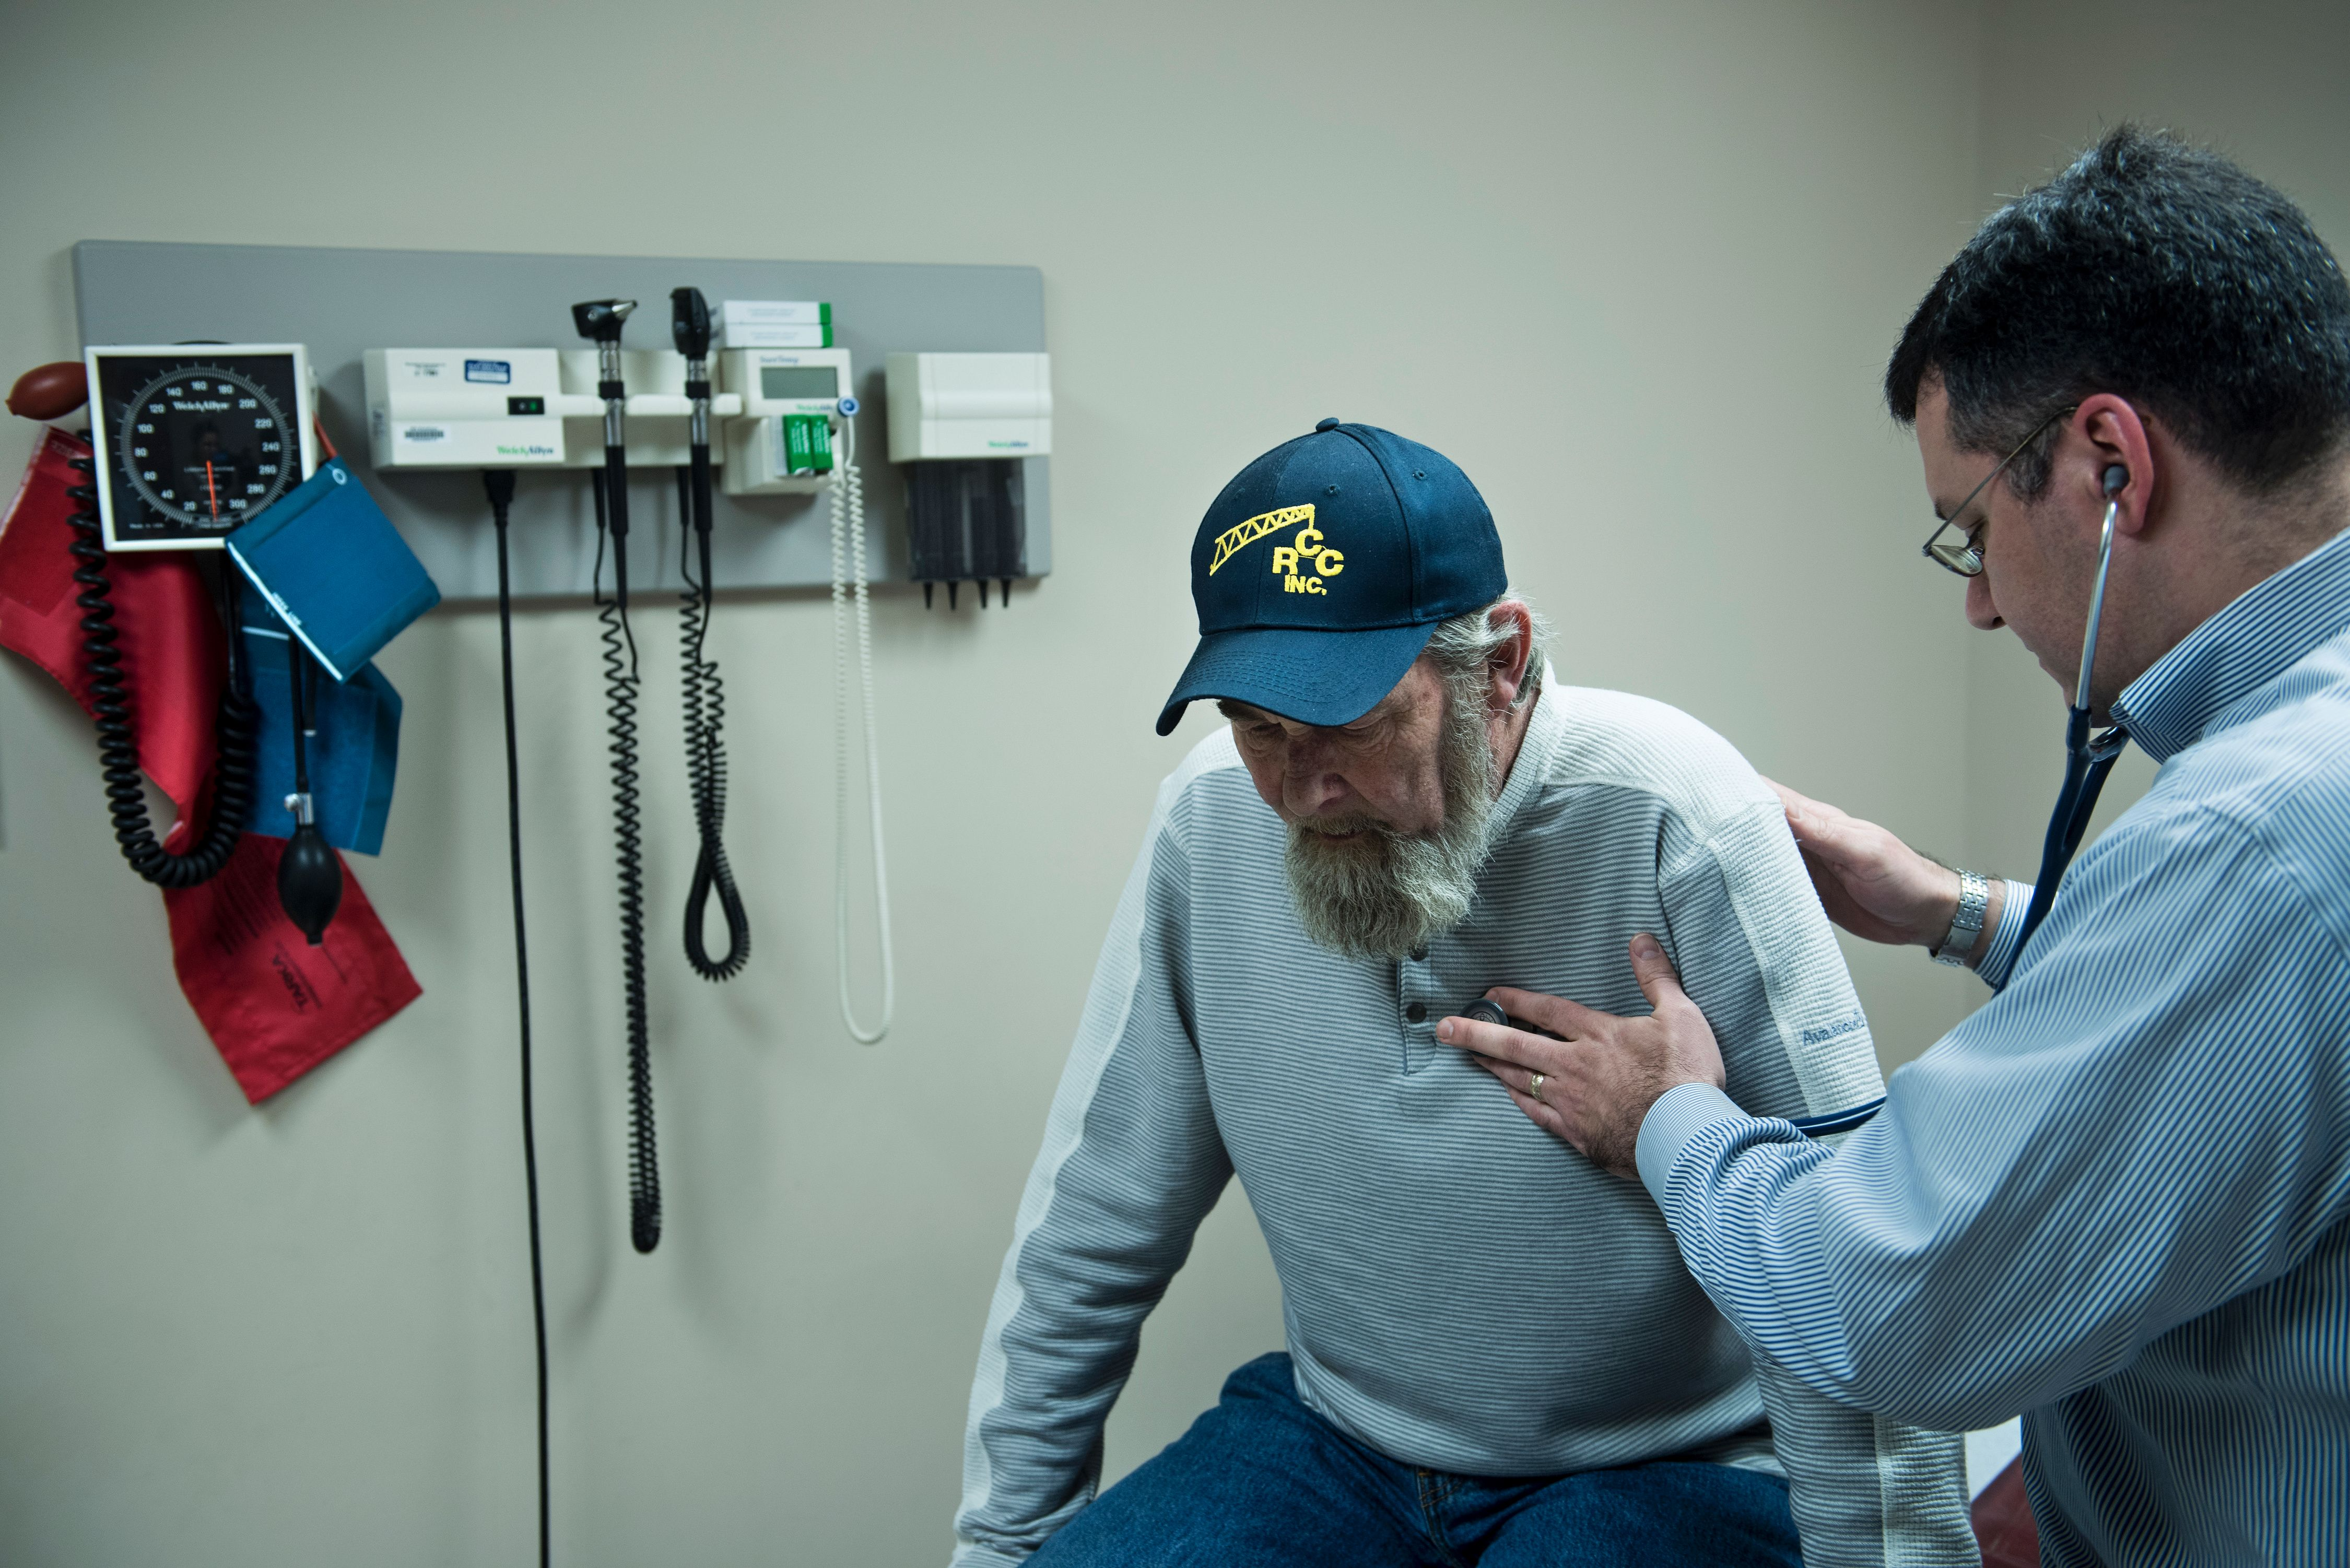 A senior visits a doctor